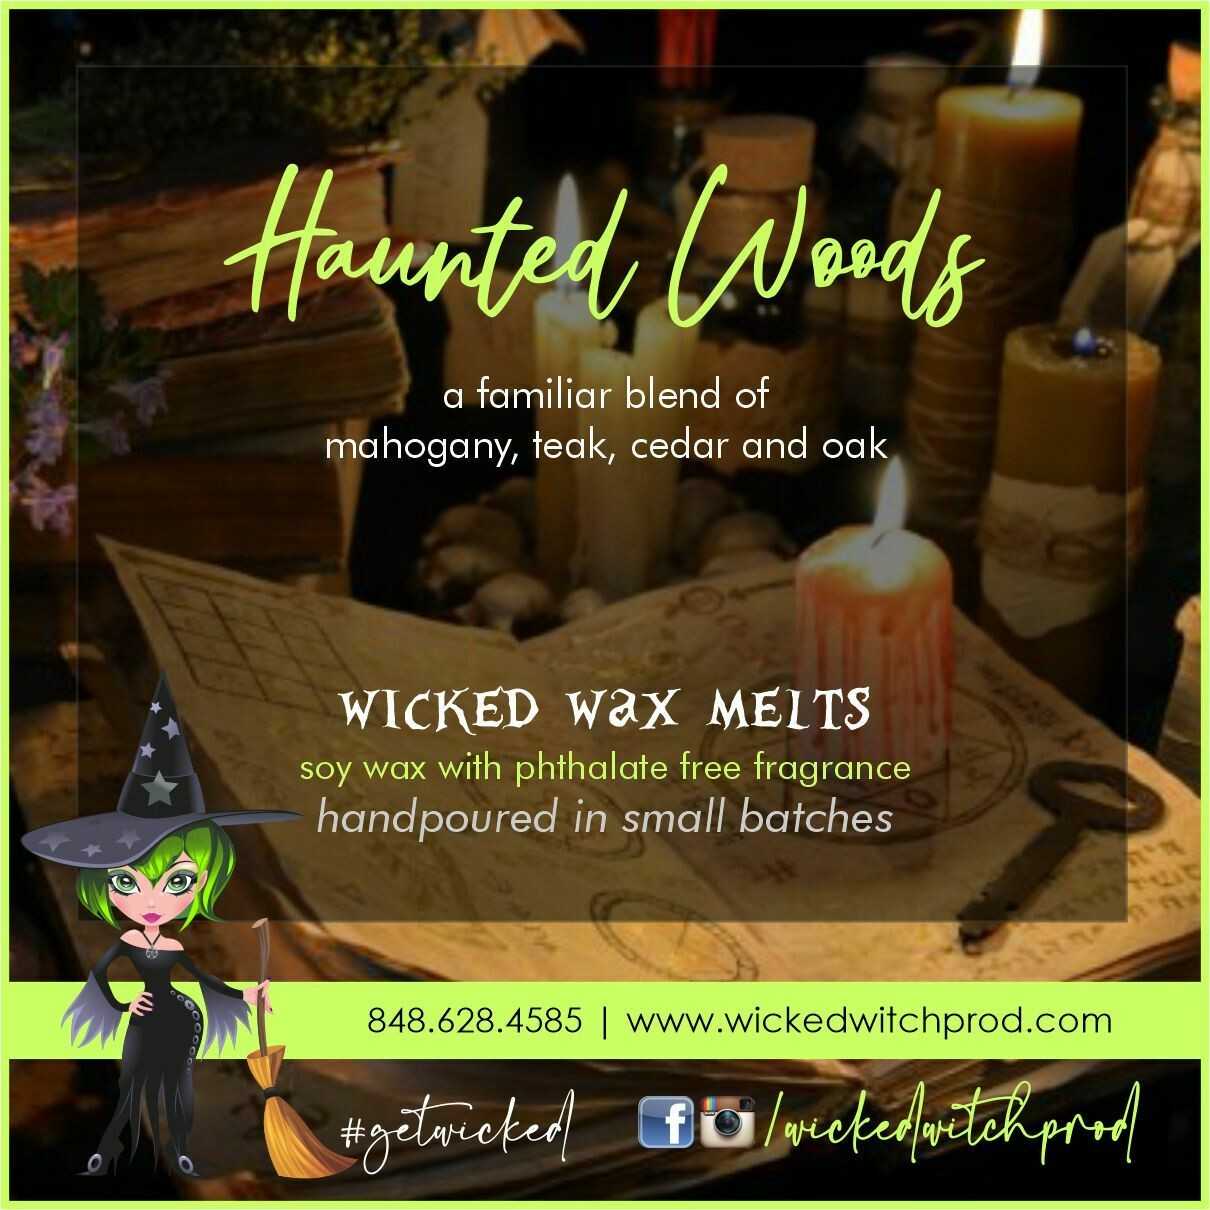 Haunted Woods Wicked Wax Melts